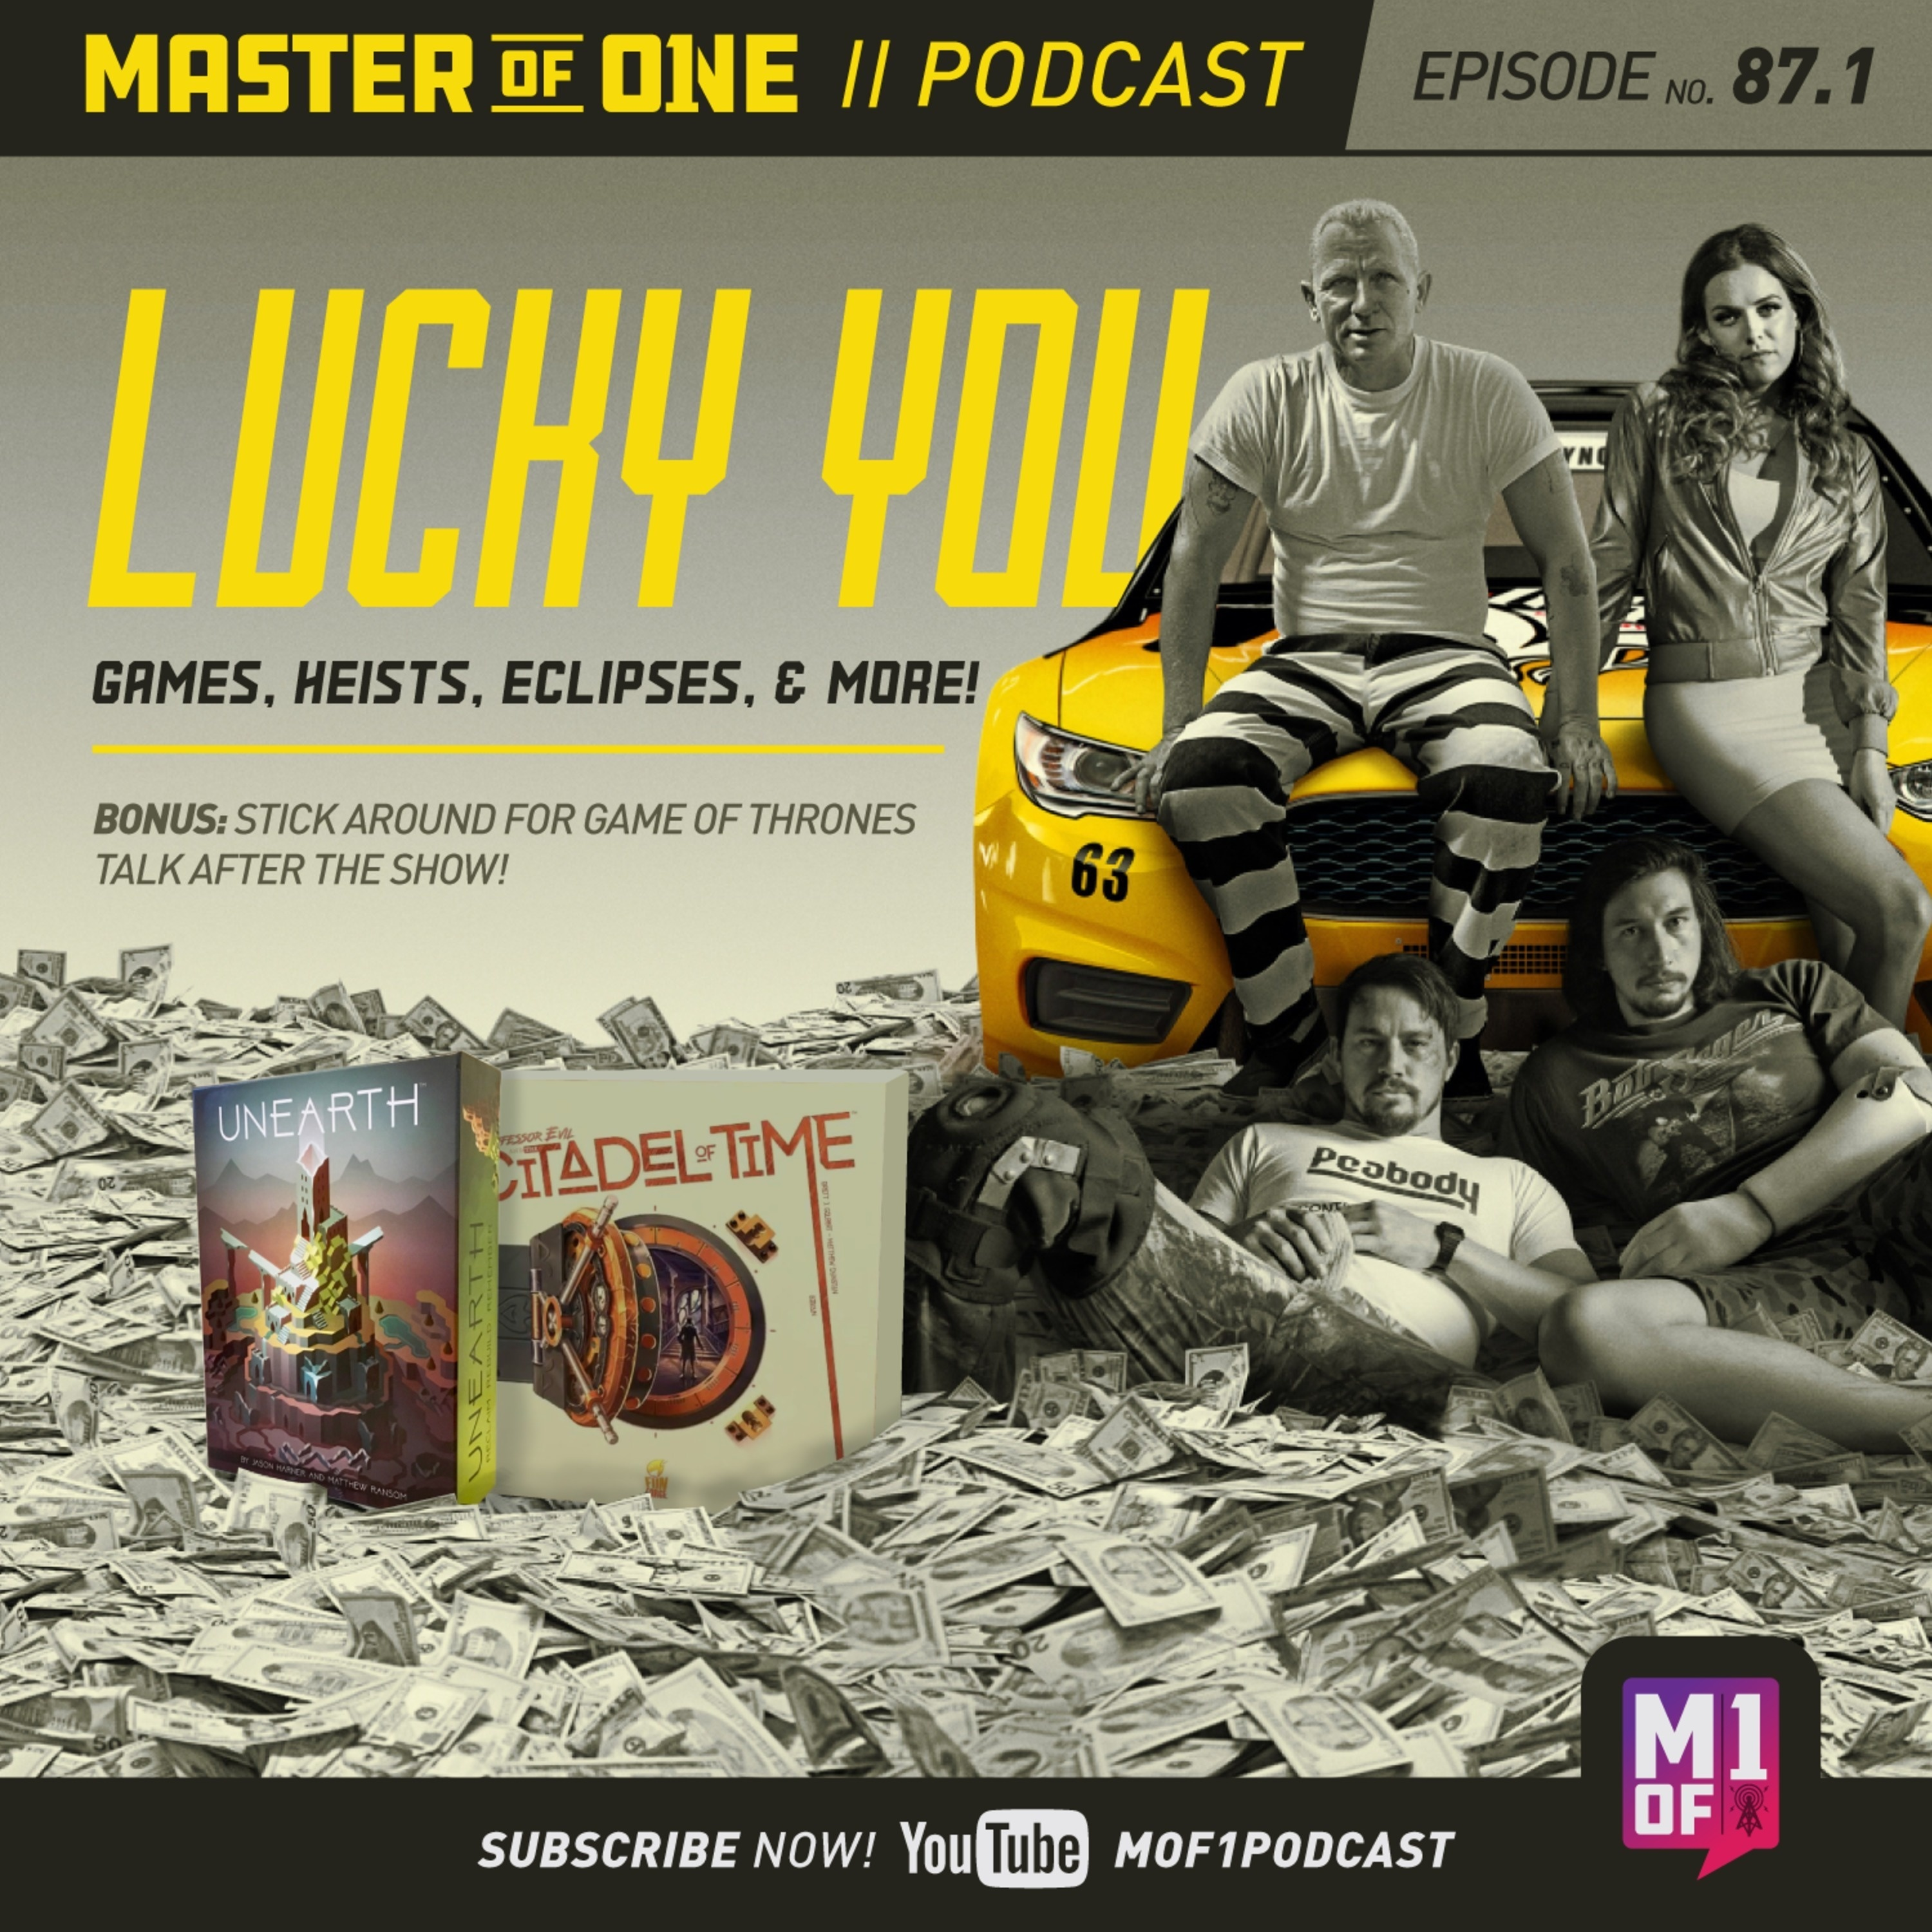 Episode 87.1: Lucky You: Games, Heists, Eclipses, & More!